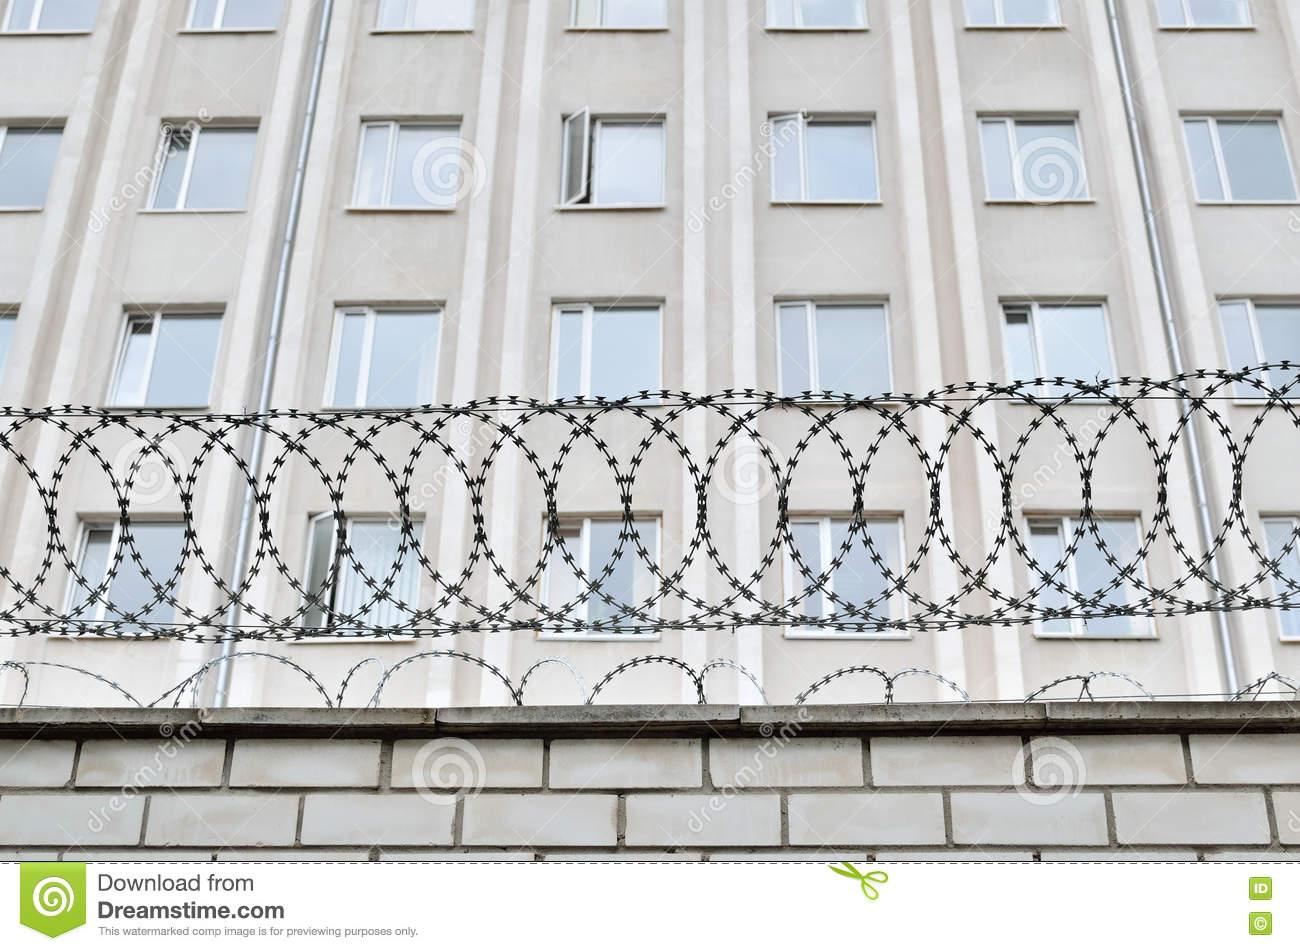 Gray Building Is Fenced With Barbed Wire. Symbol Of Dictatorial And ...